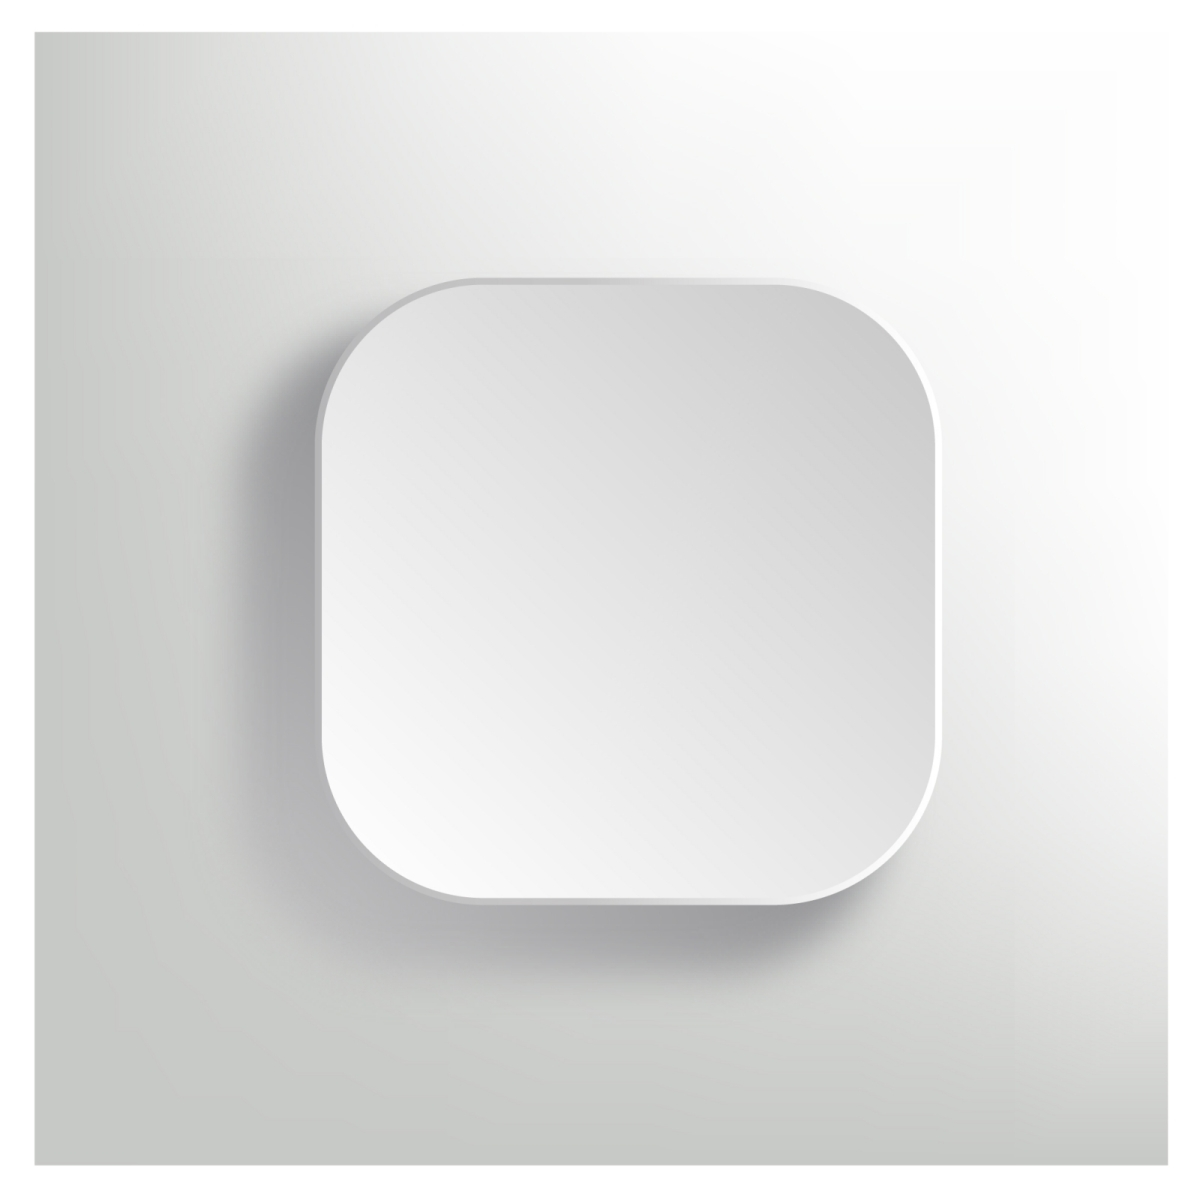 Have we reached peak minimalism less by design for Design a button template free